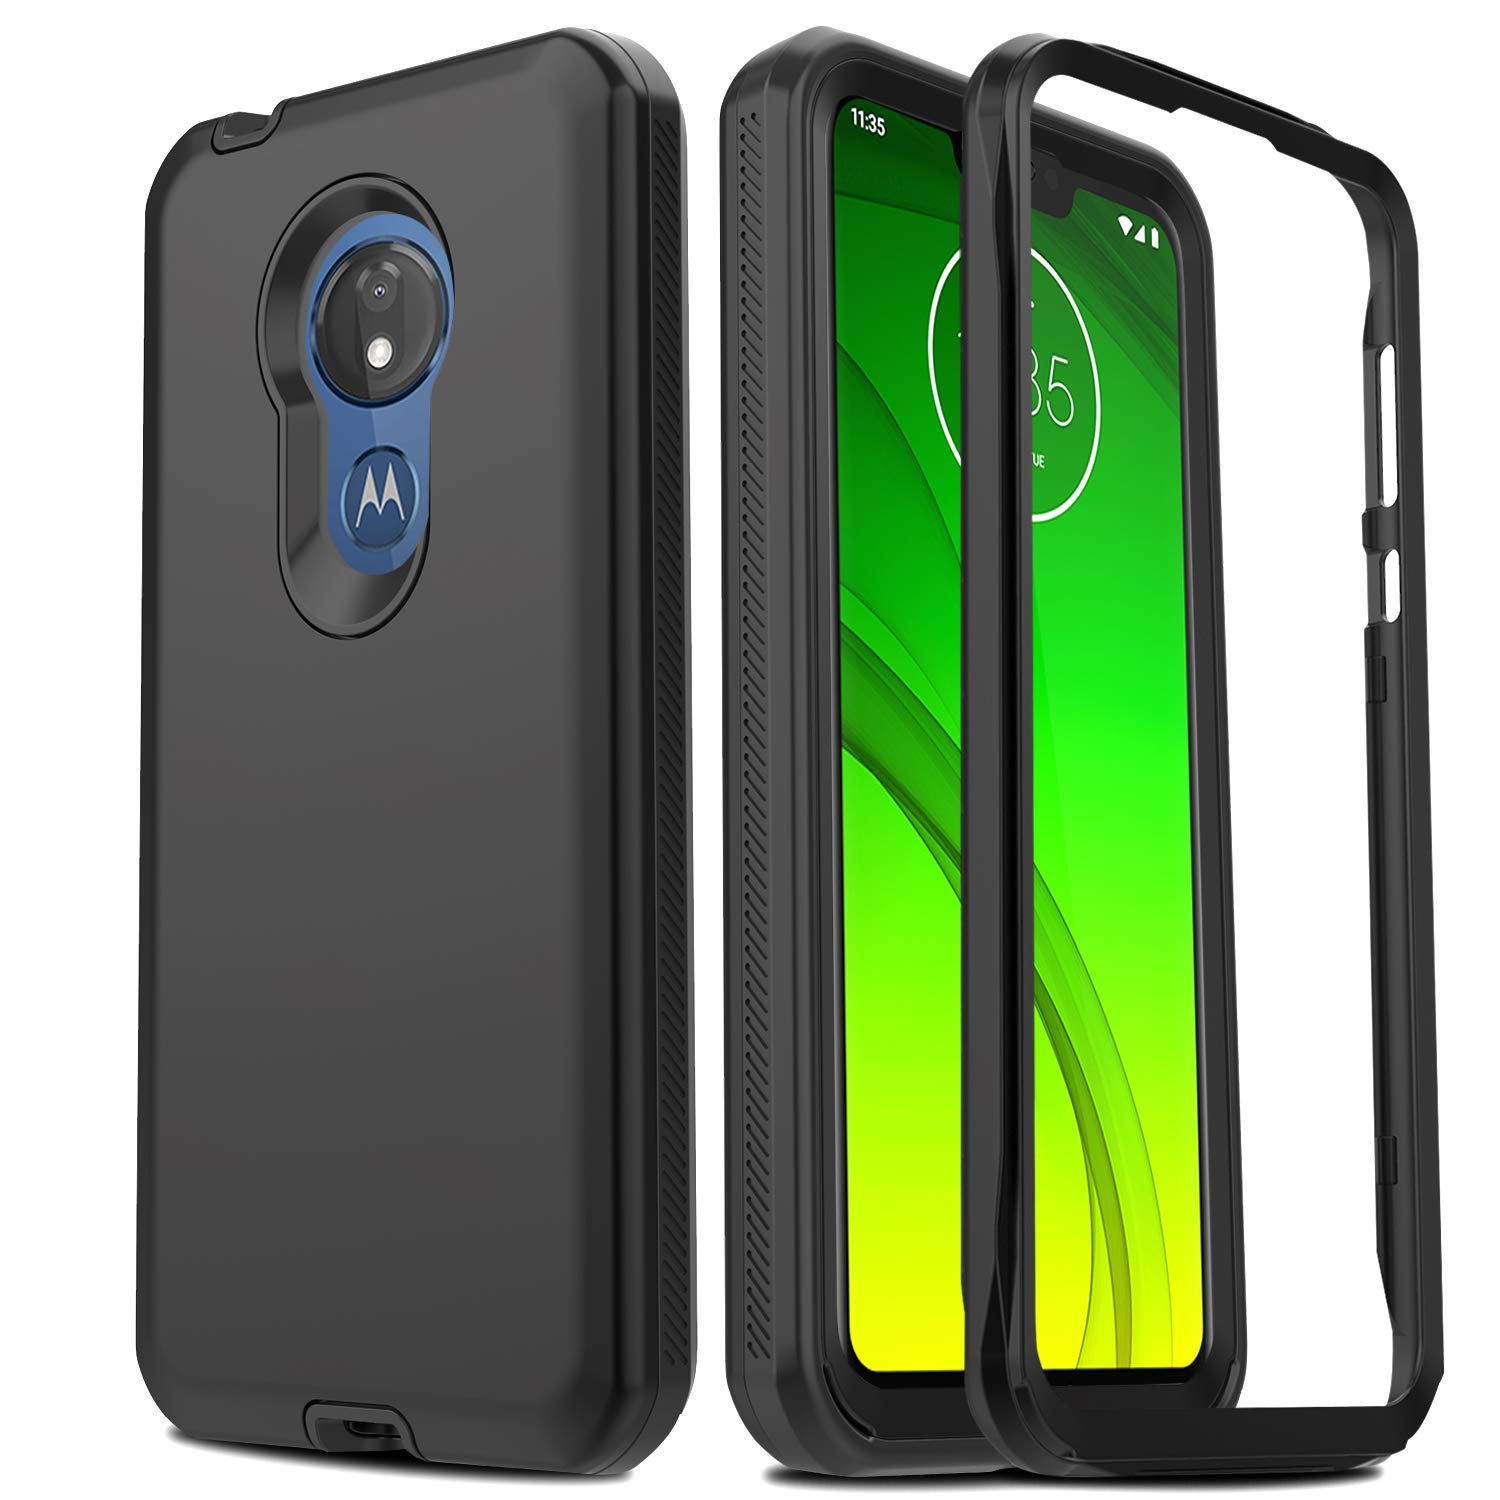 AMENQ Case for Moto G7 Power, Moto G7 Optimo Max XT1955 Case, Moto G7 Supra Case, Full Body Heavy Duty with TPU Bumper and Rugged PC Armor Protective ...